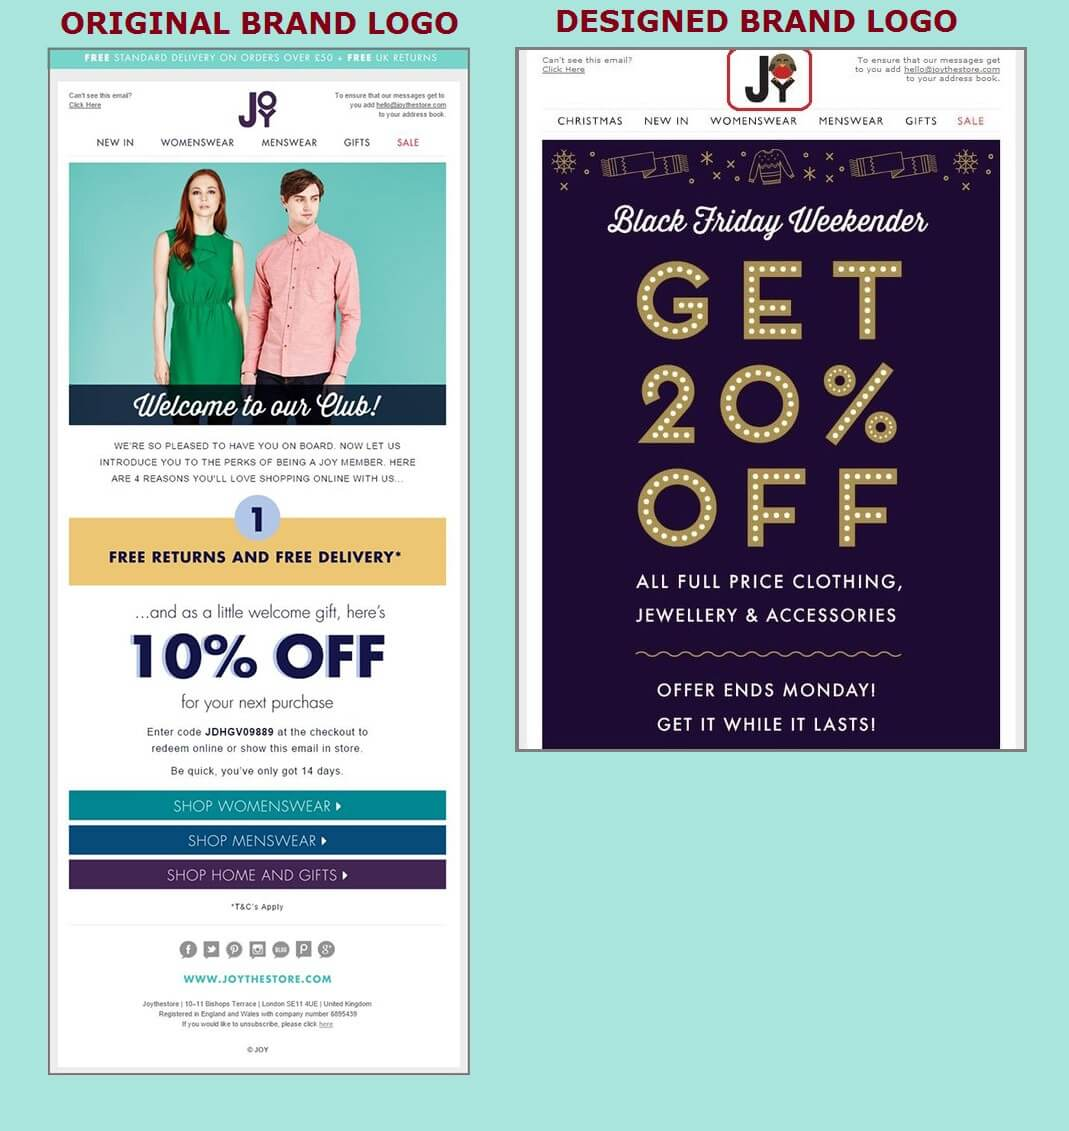 Leveraging Logos In Emails With Festal Branding